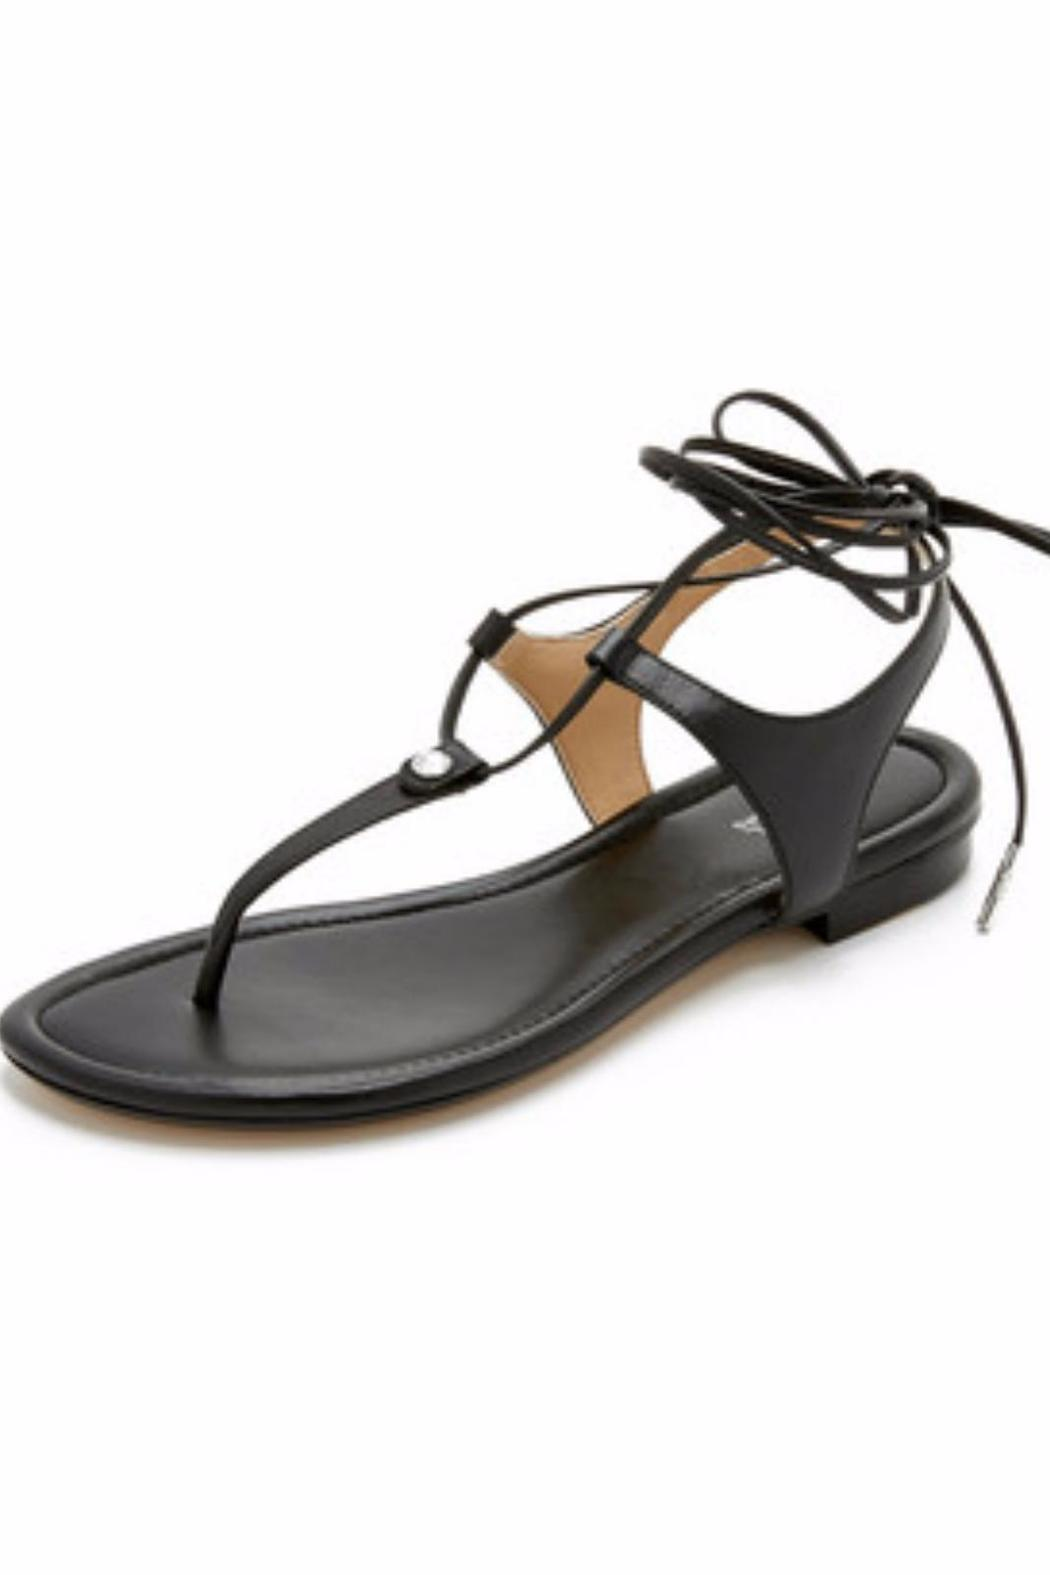 Michael Kors Lace Up Sandal from Canada